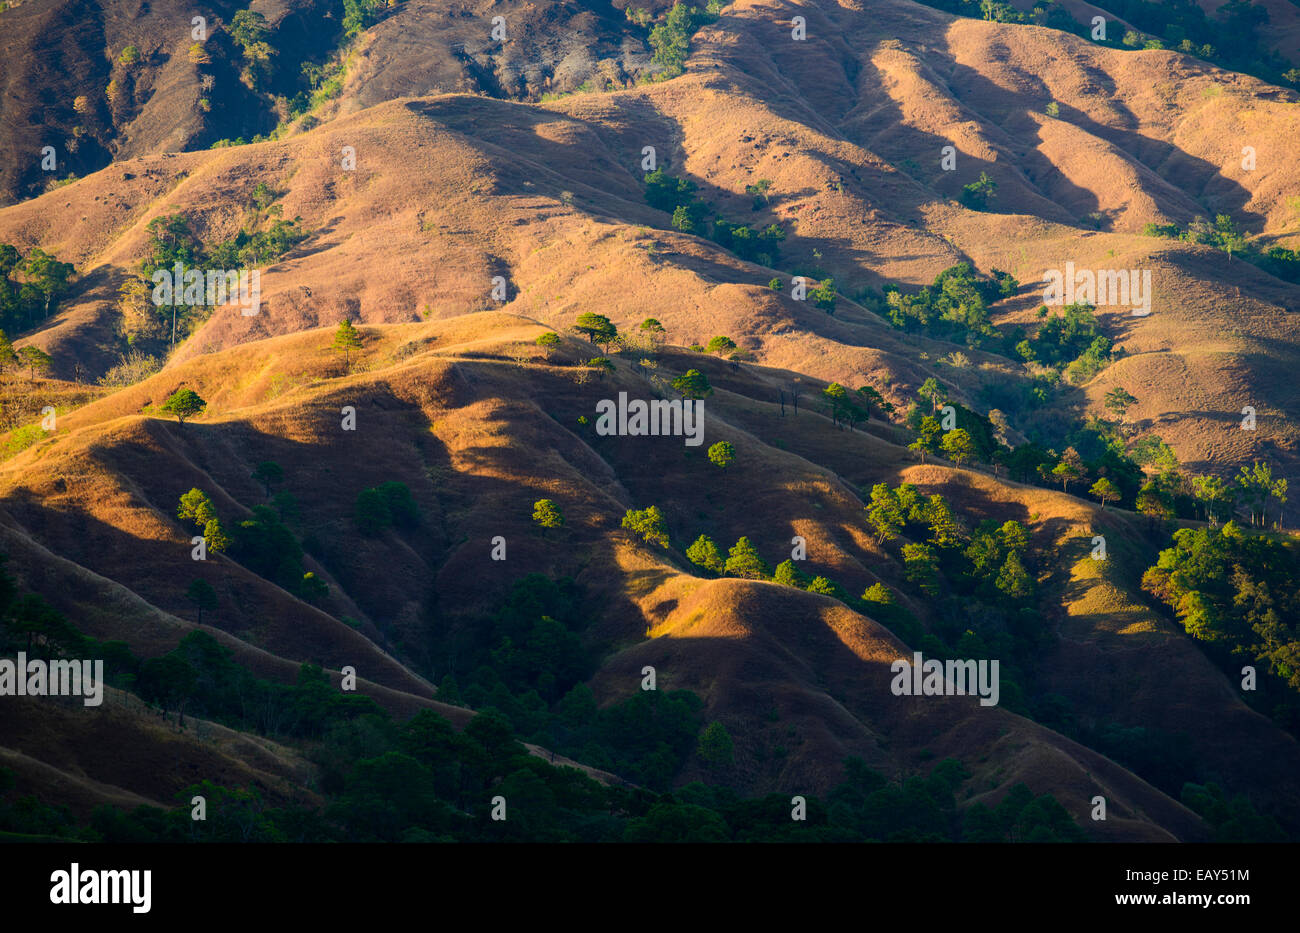 The Cordillera, North Luzon, Philippines - Stock Image